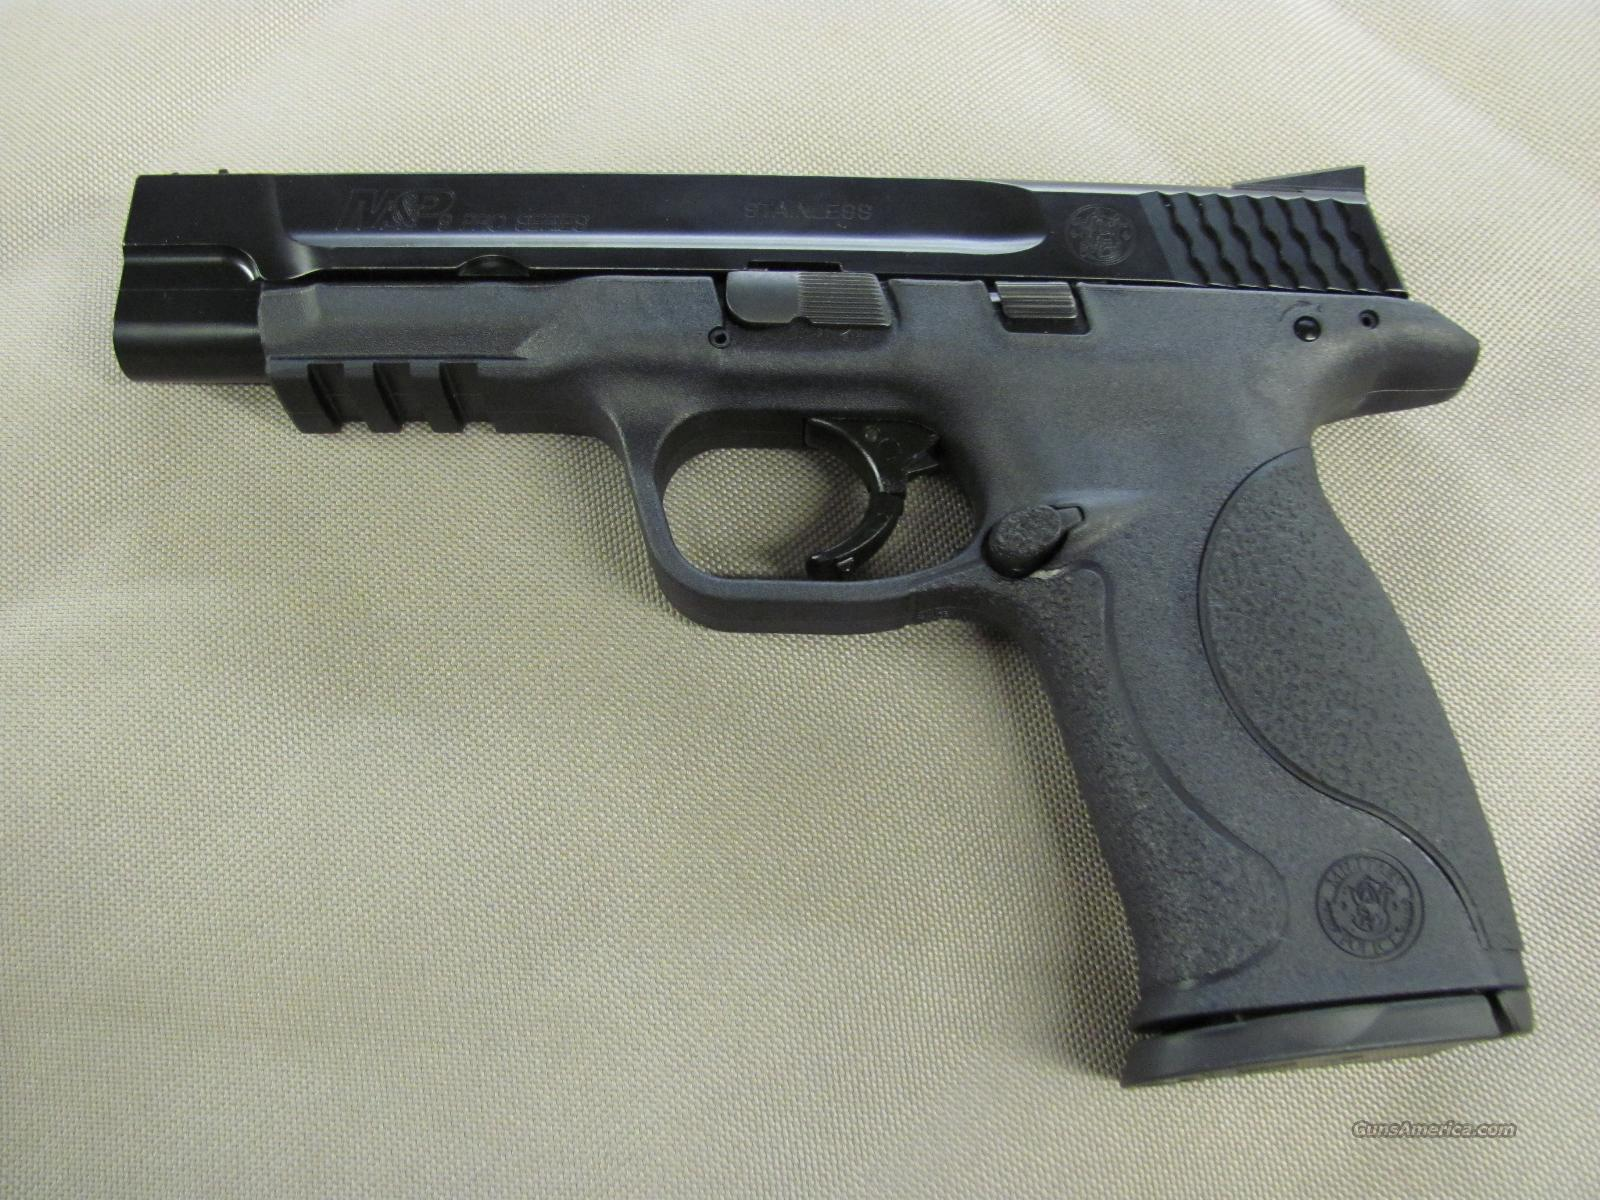 Smith & Wesson M&P 9 Pro Series 9 mm  **NEW**  Guns > Pistols > Smith & Wesson Pistols - Autos > Polymer Frame